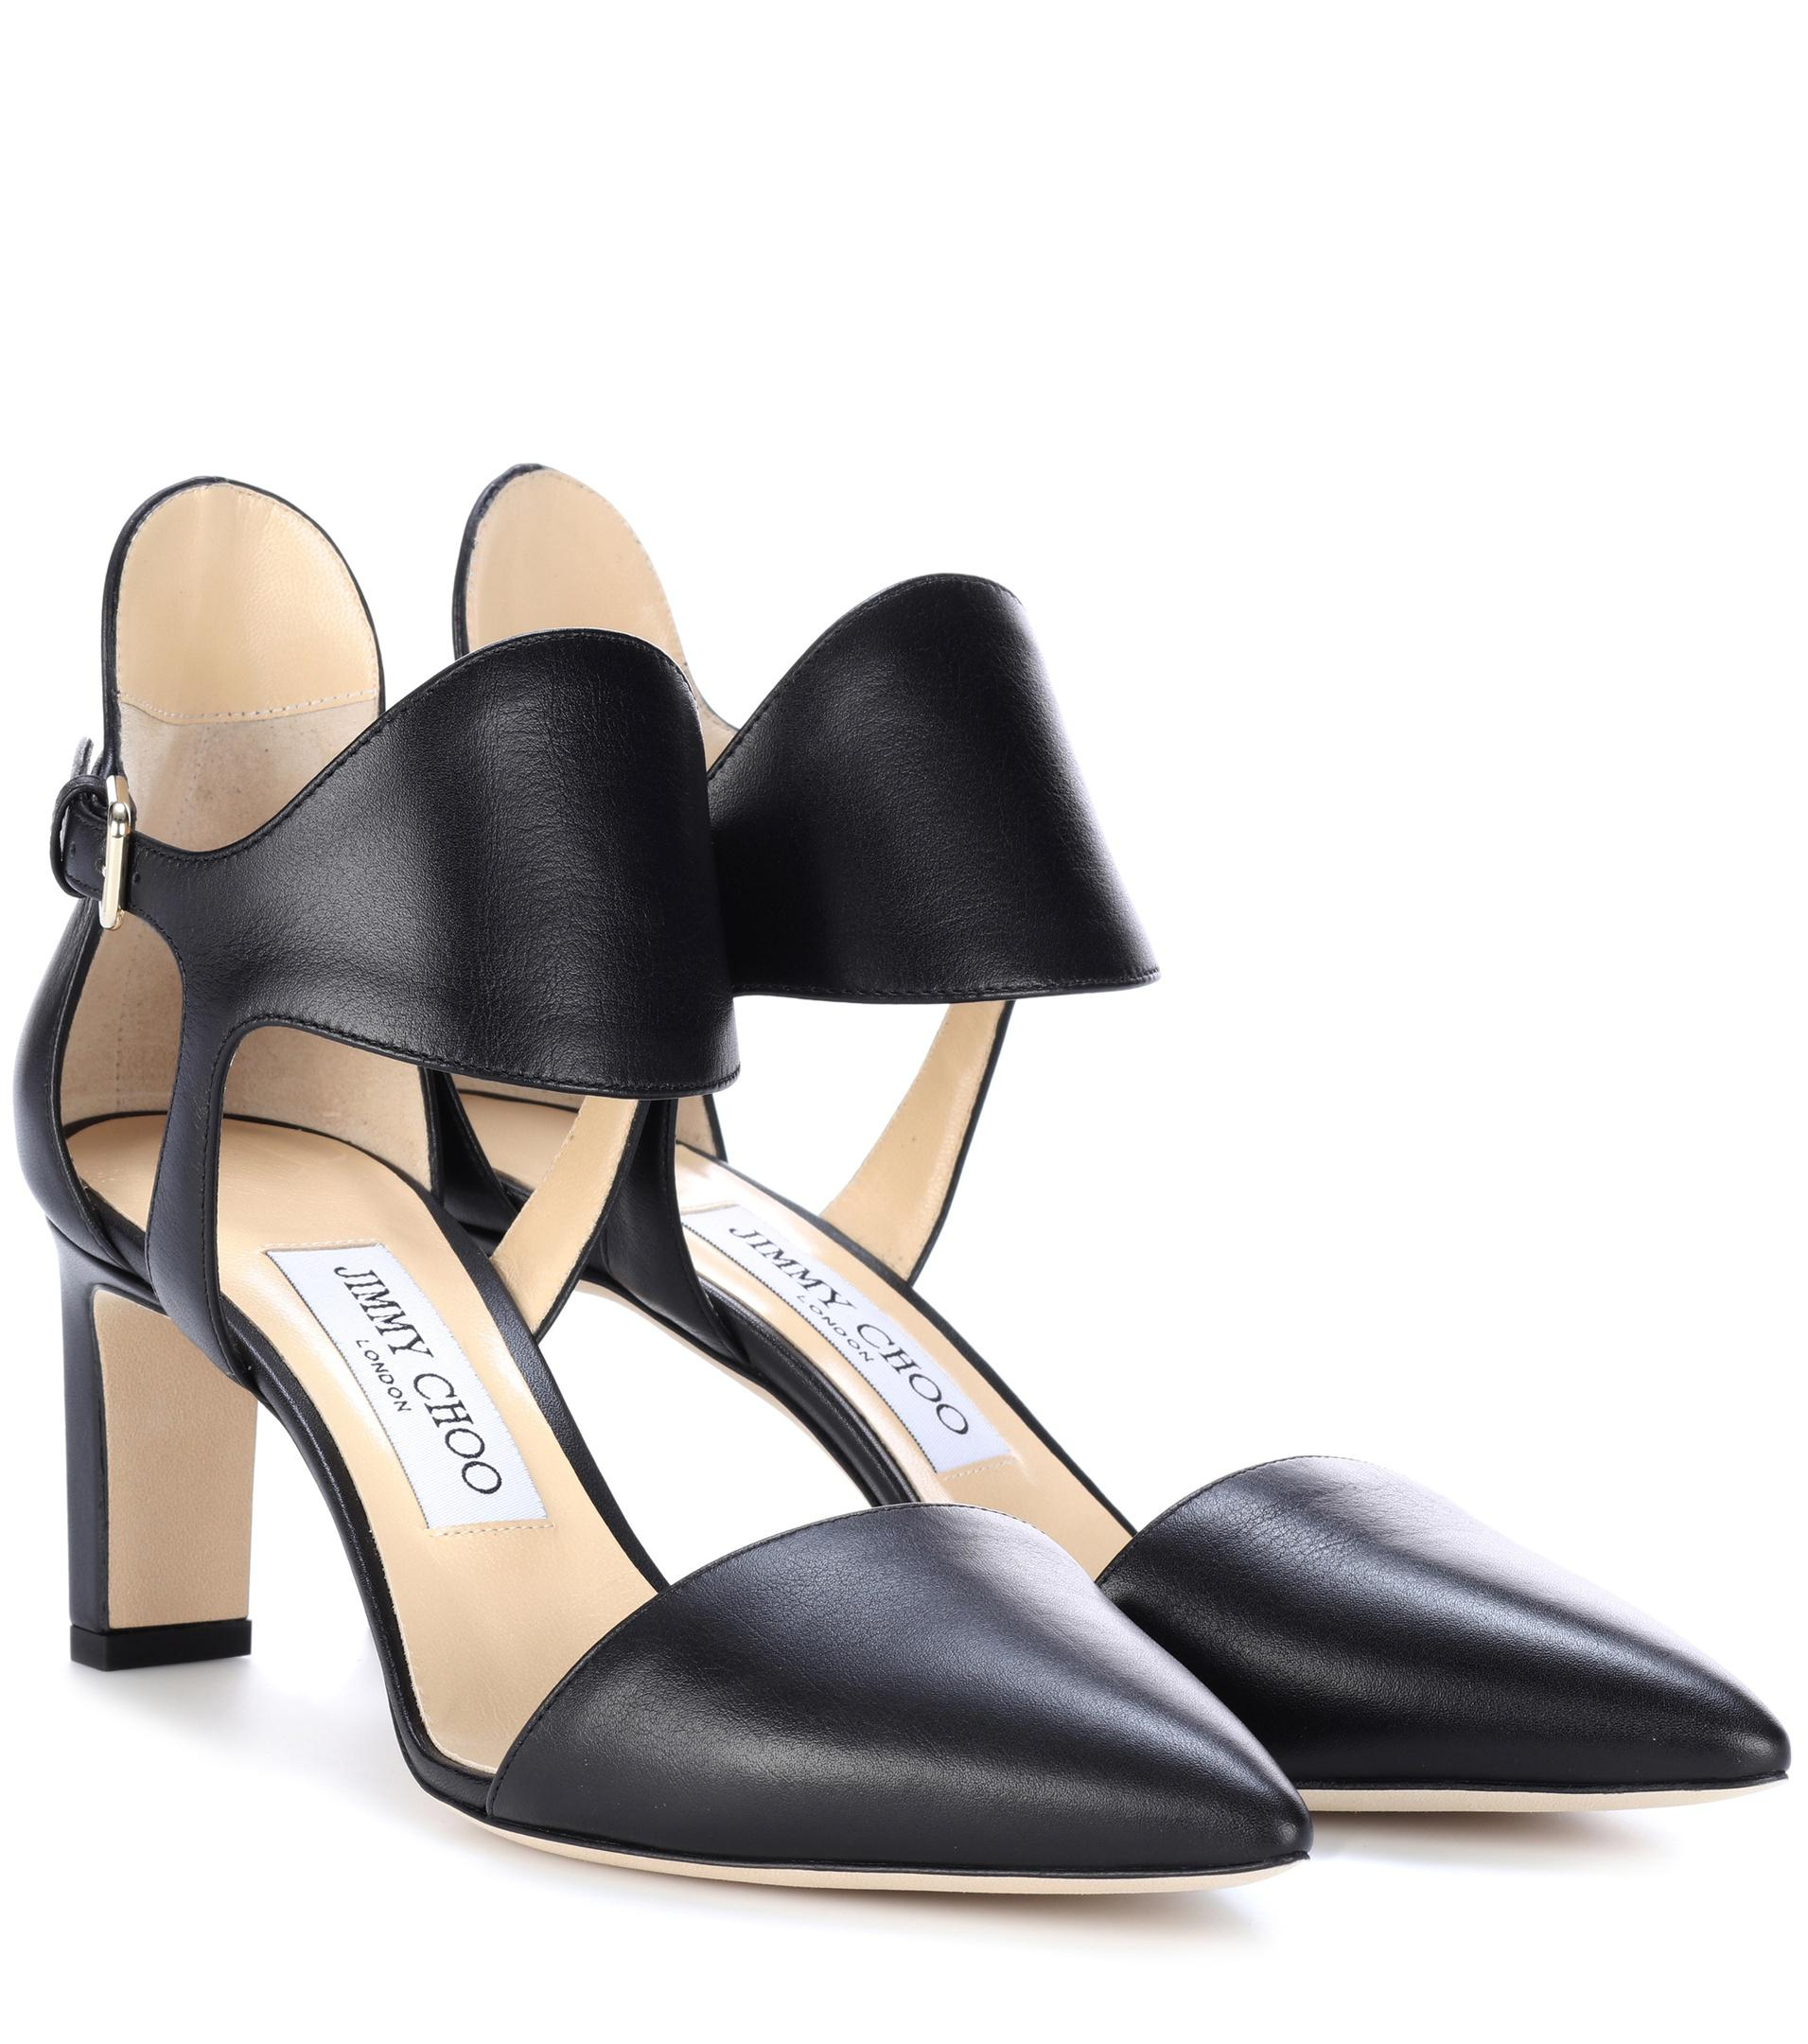 6813bf903727 Lyst - Jimmy Choo Moon 65 Leather Pumps in Black